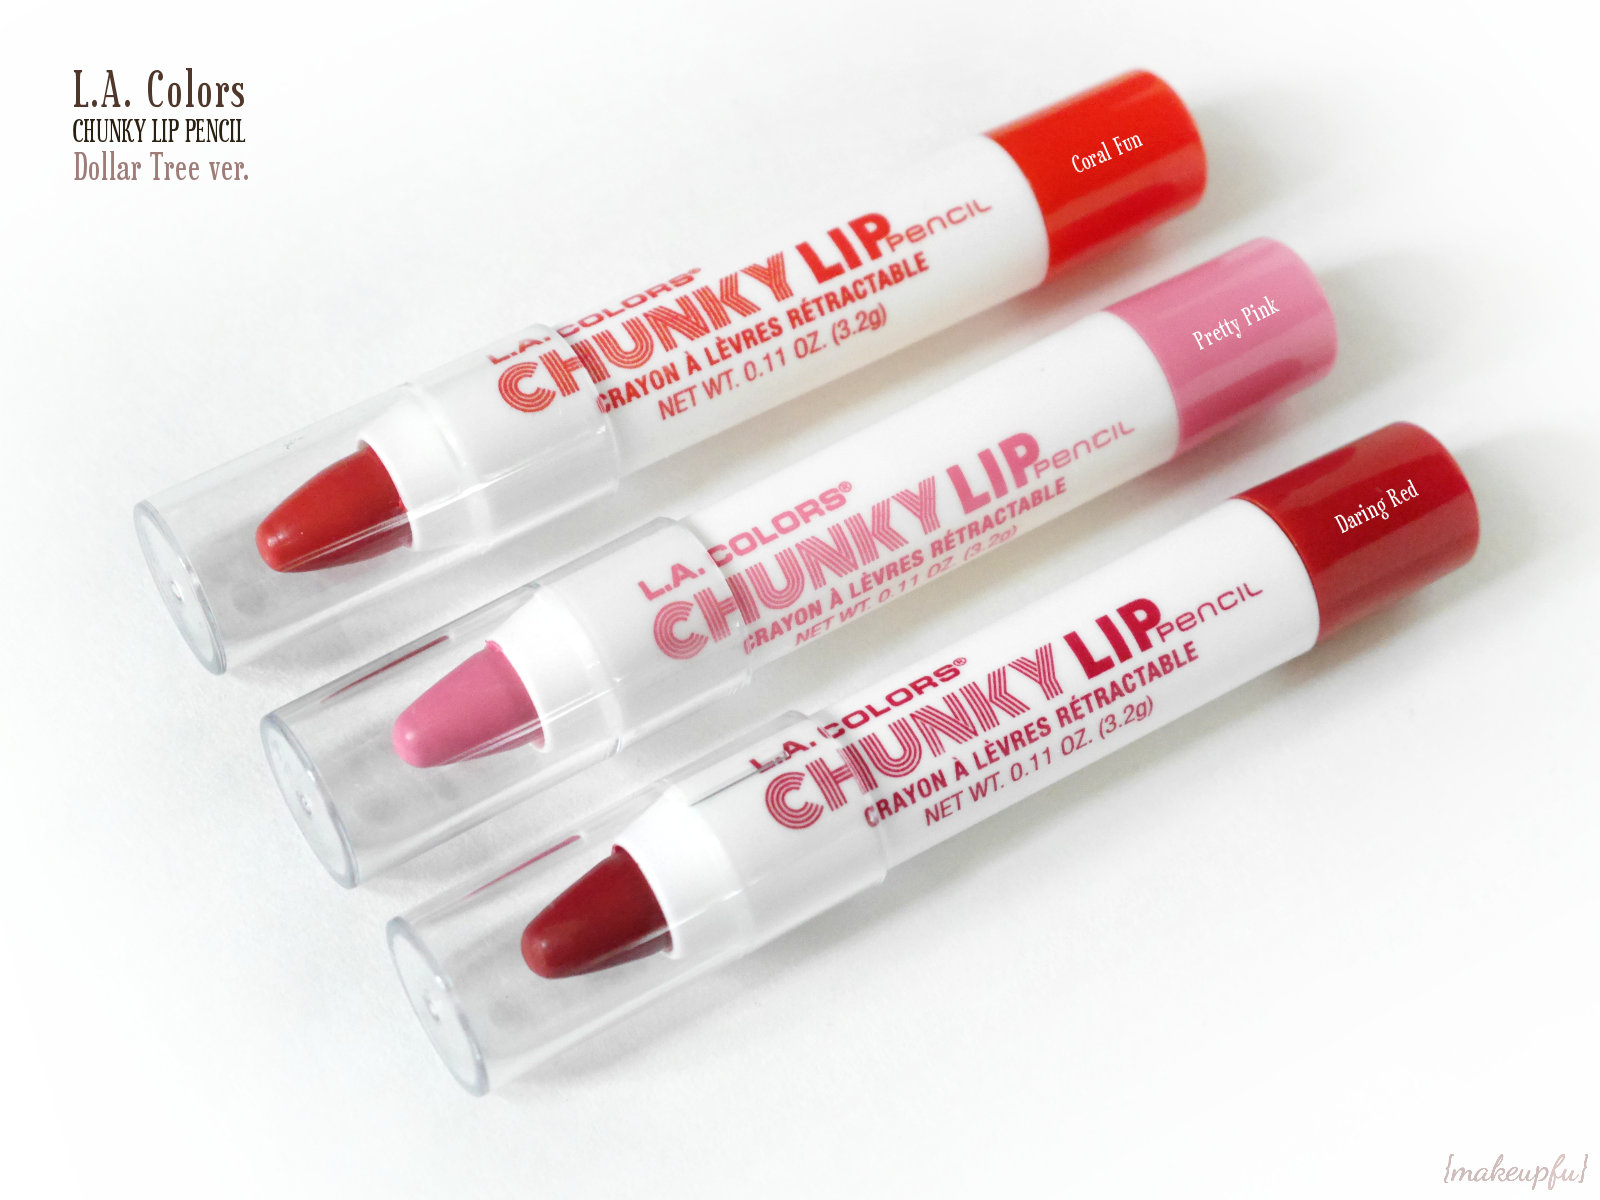 La Colors Chunky Lip Pencil Dollar Tree Ver Review Makeupfu 5 Color Matte Eyeshadow Palette Pencils In Coral Fun Pretty Pink And Daring Red